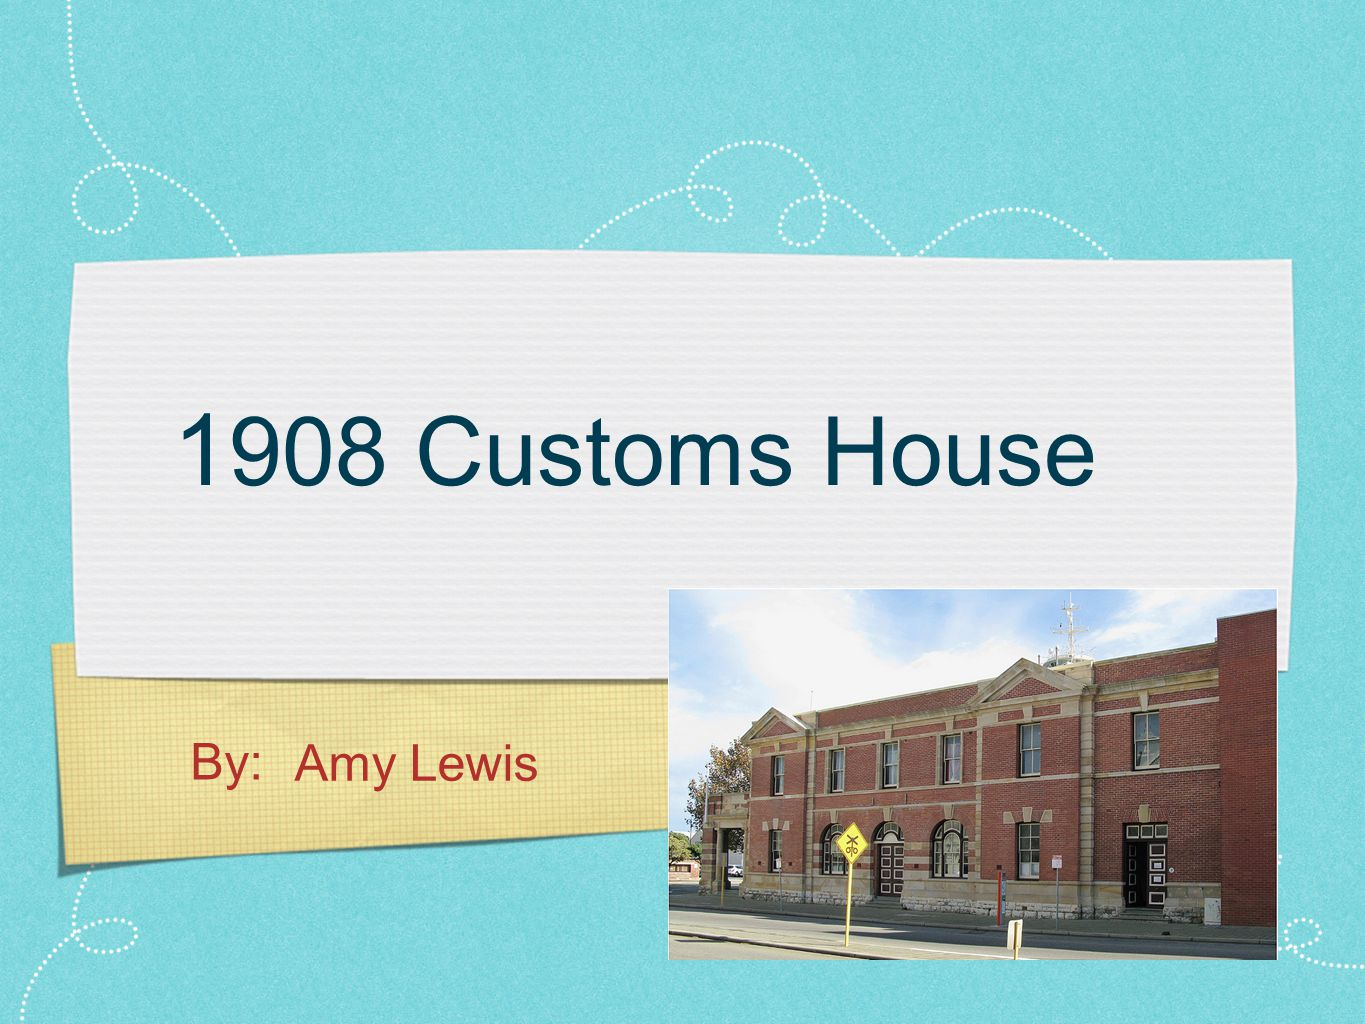 1 908 Customs House Amy Lewis By: